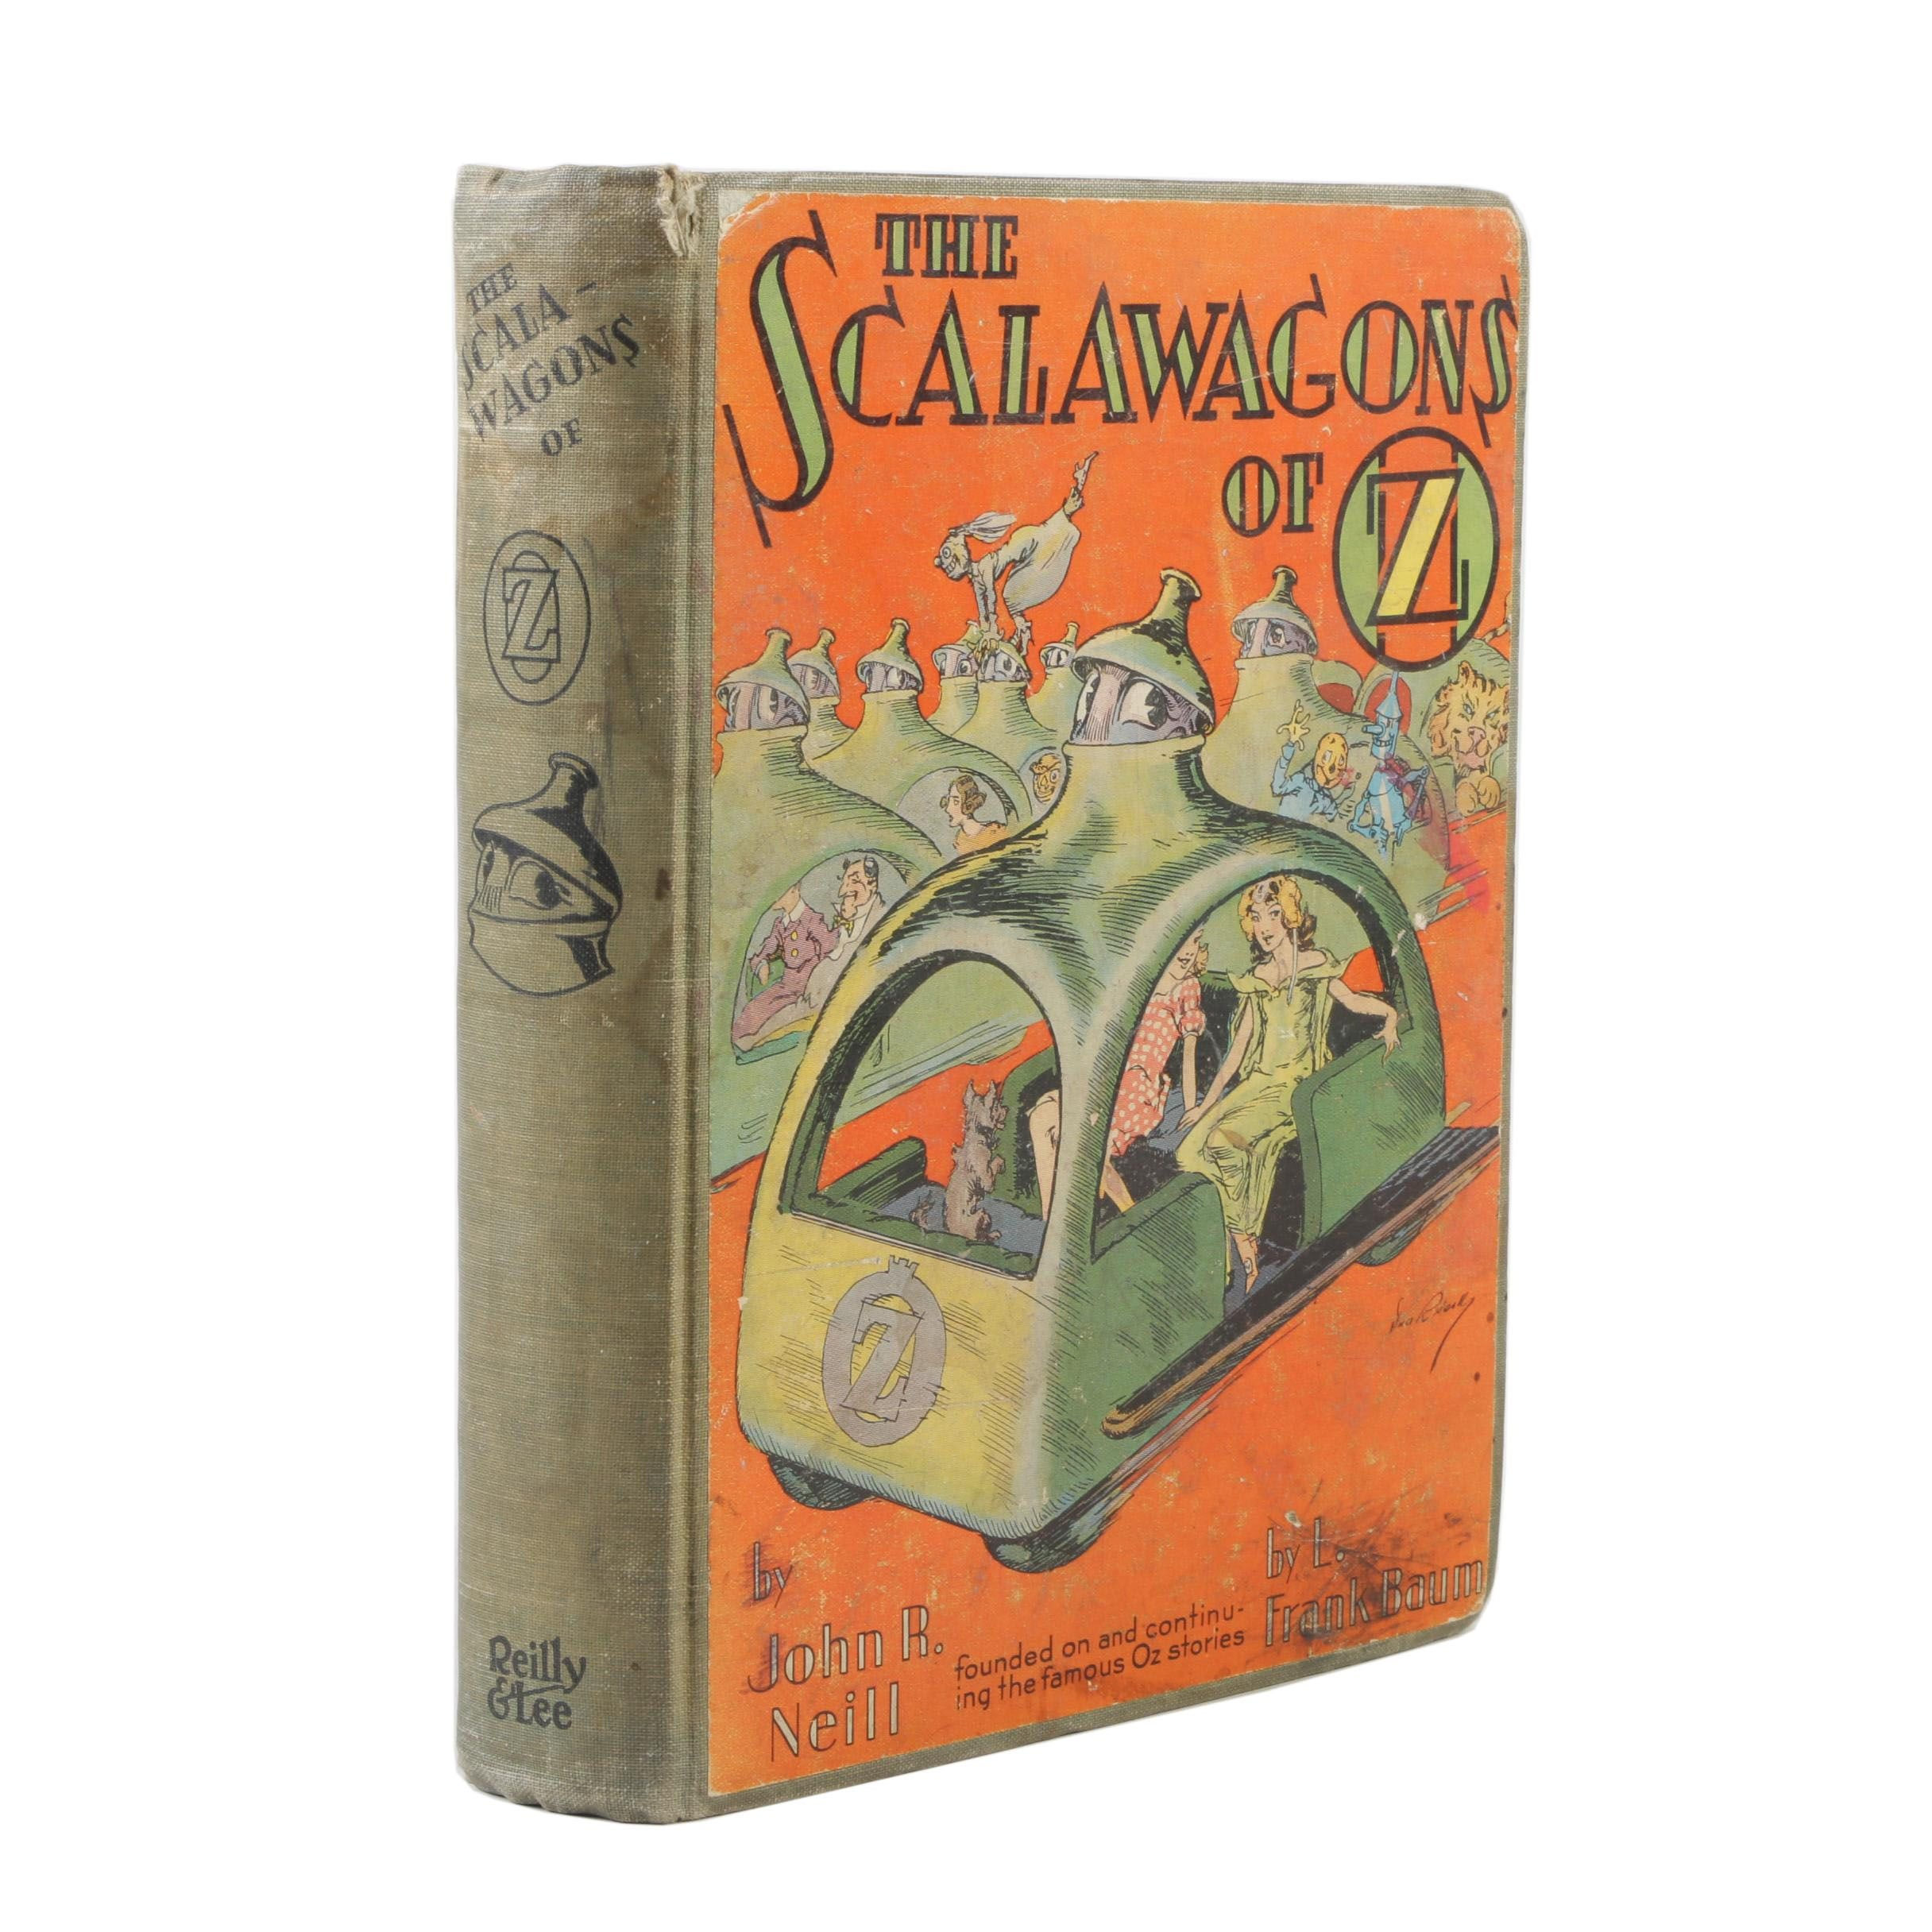 """1941 First Printing """"The Scalawagons of Oz"""" by John R. Neill"""